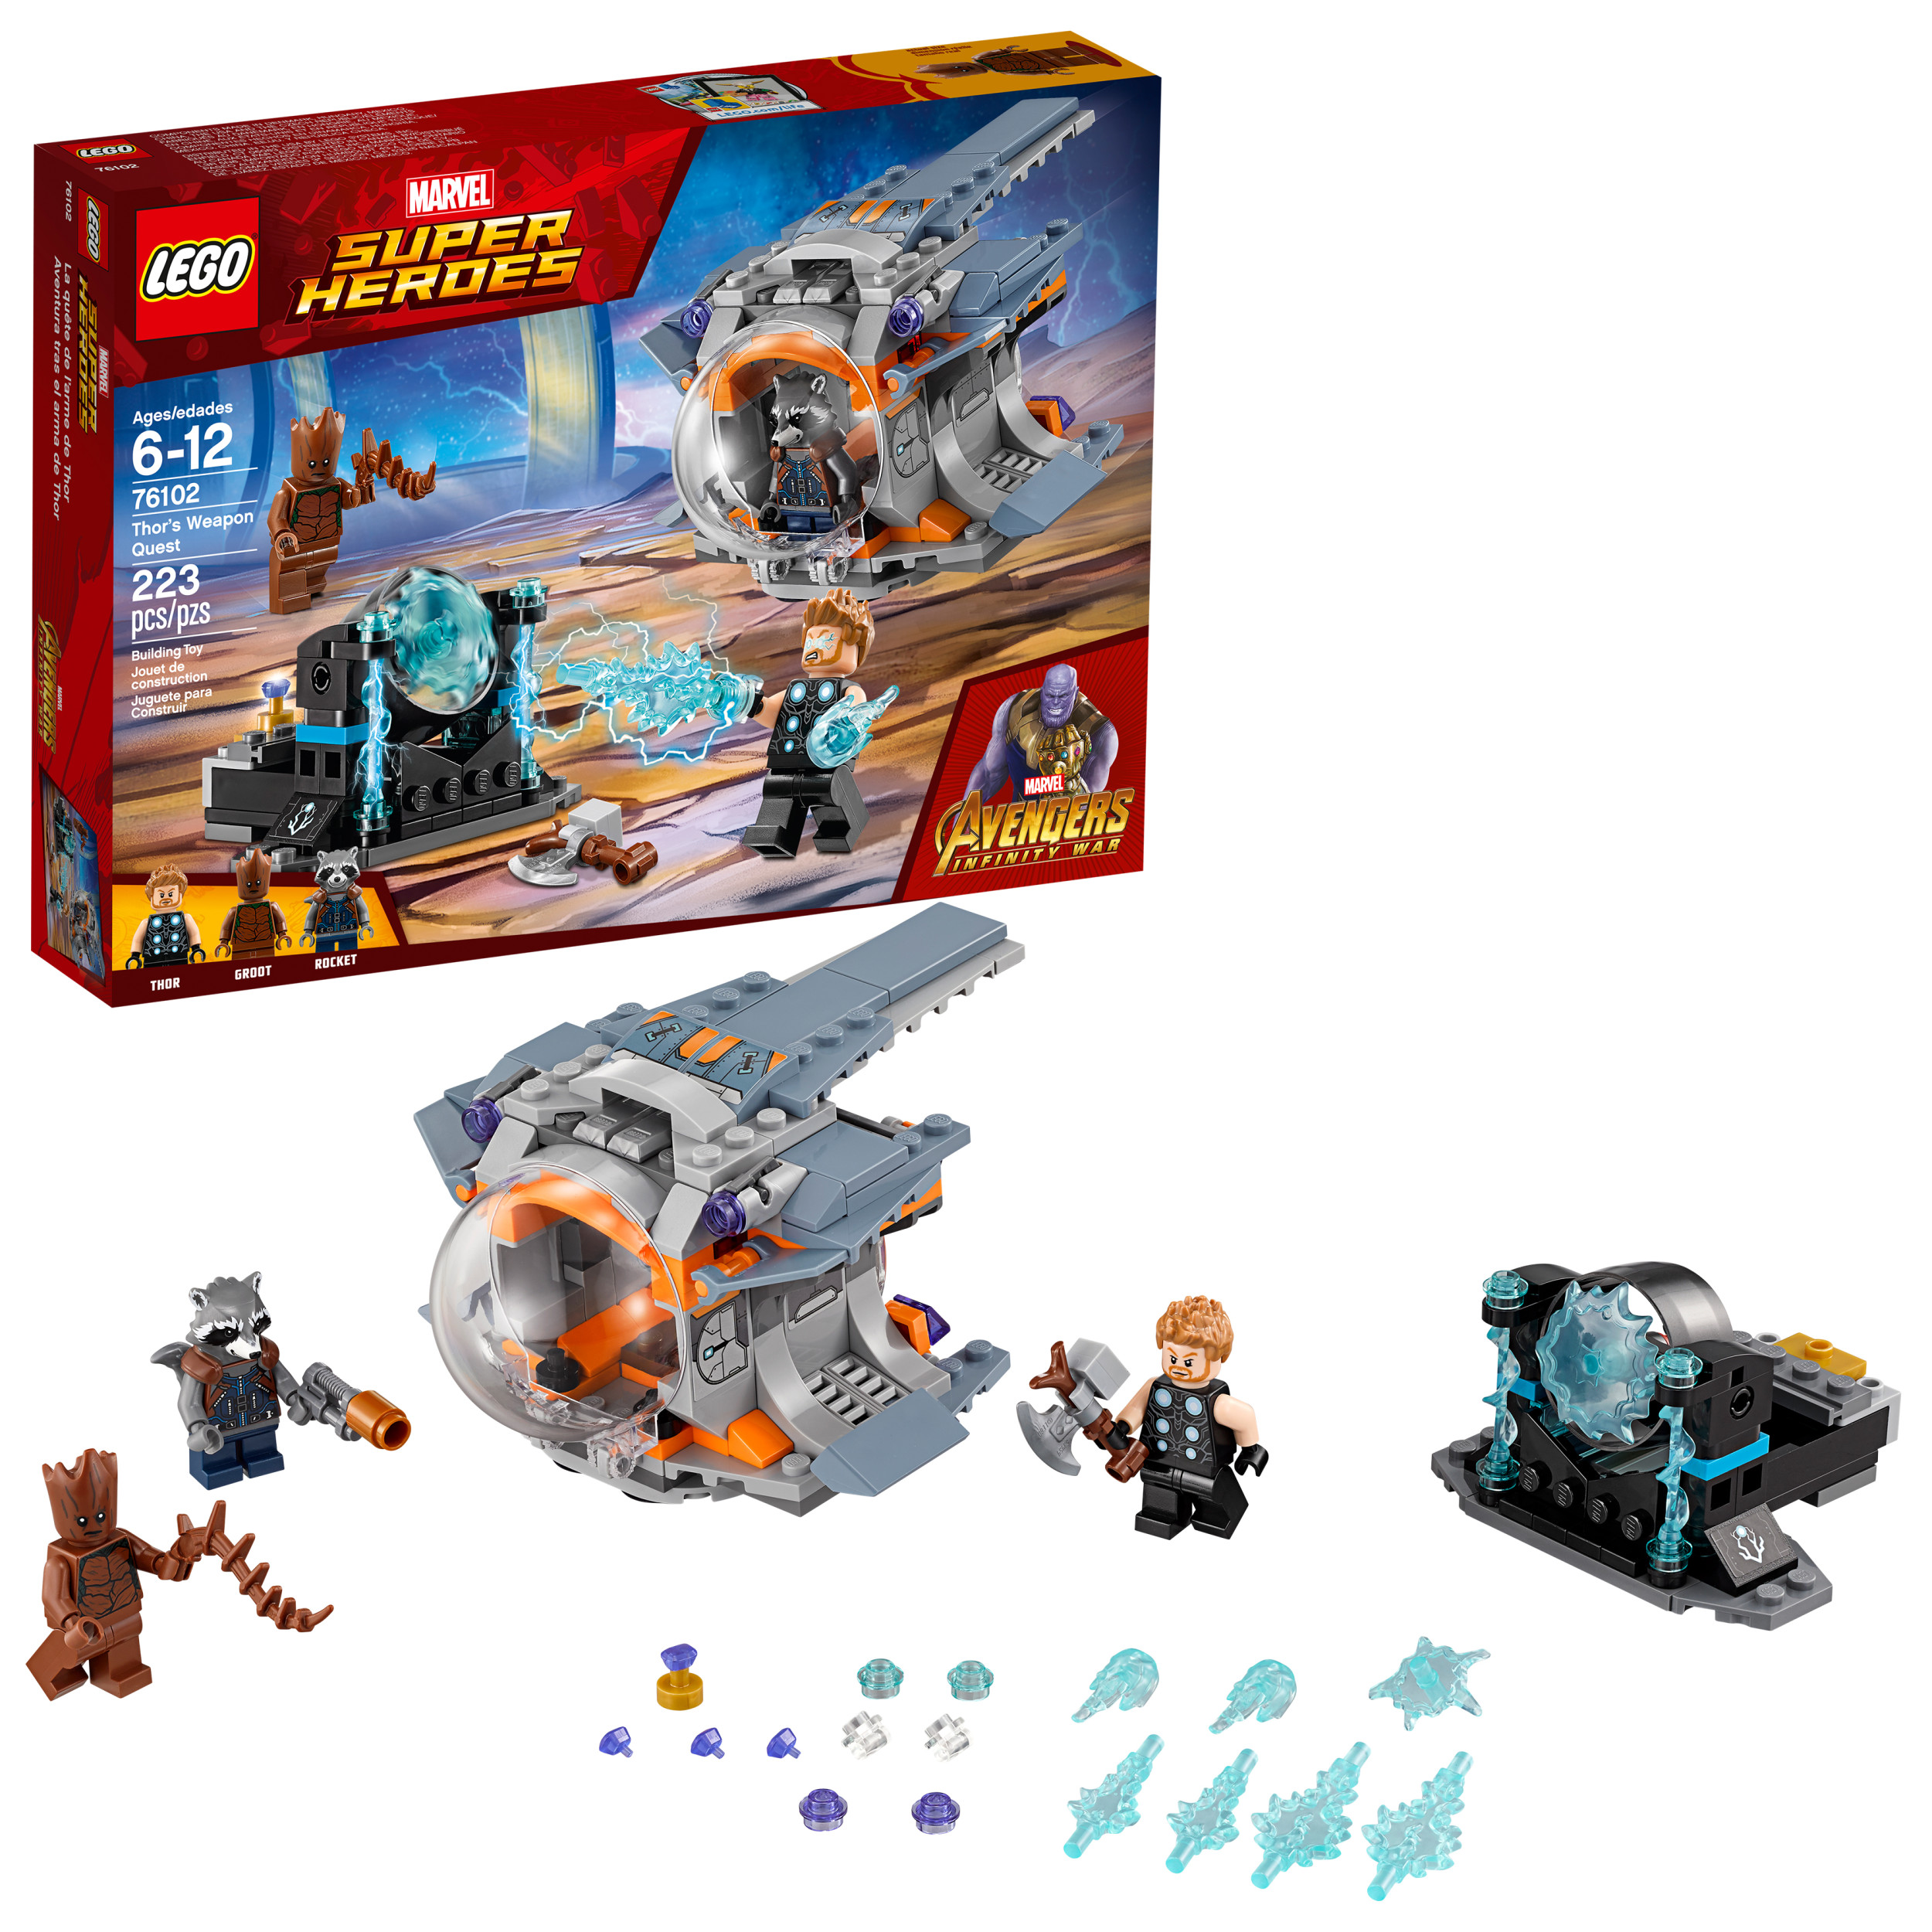 LEGO Marvel Super Heroes Avengers Thor's Weapon Quest 76102